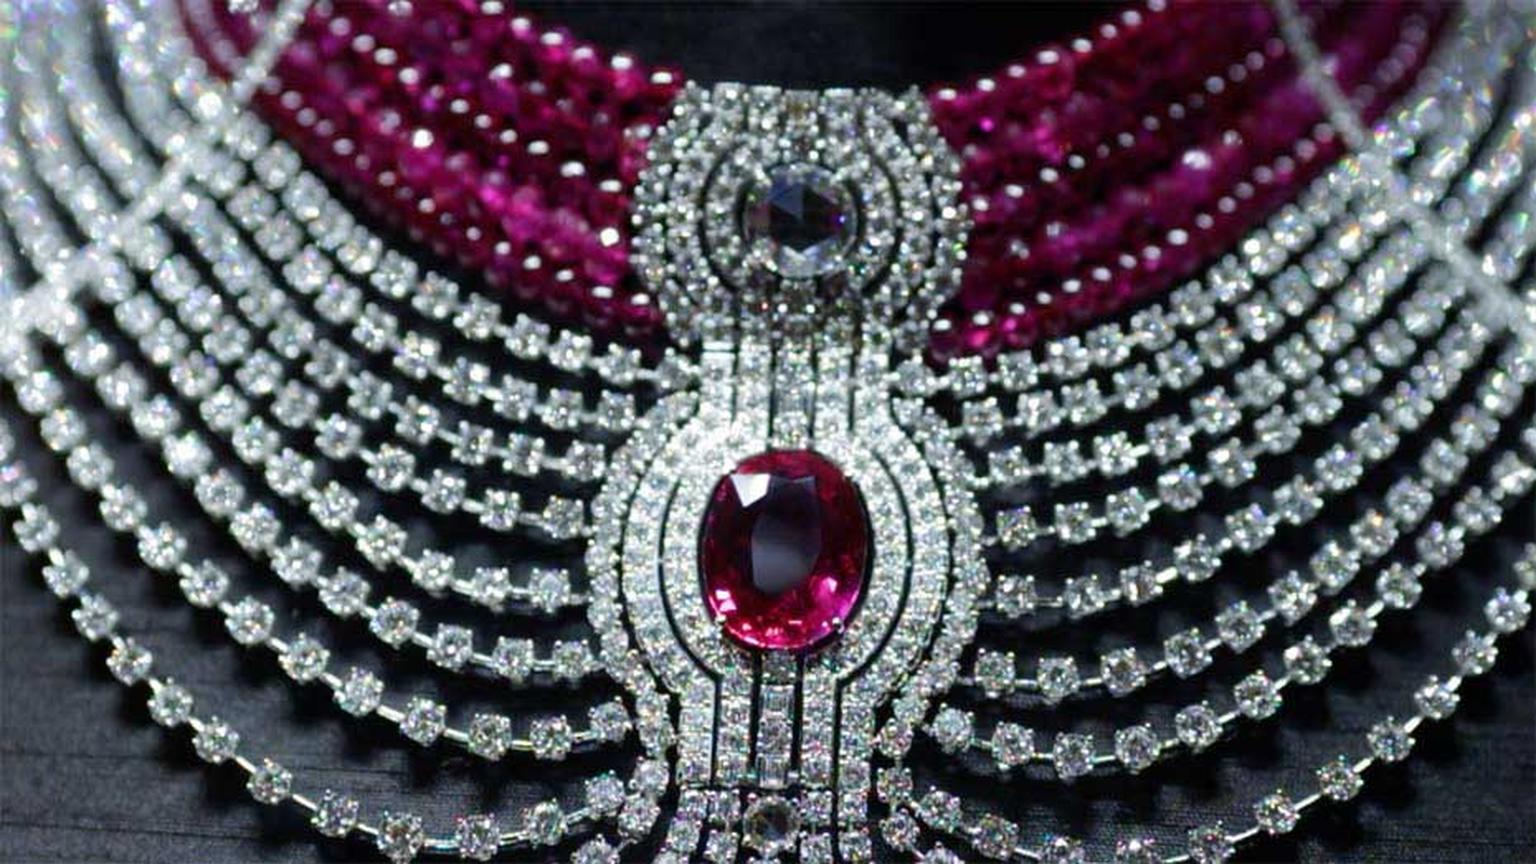 Created especially for the Biennale des Antiquaires, Cartier's Royal collection Reine Makéda necklace stars a 15ct oval-shaped ruby from Mozambique.